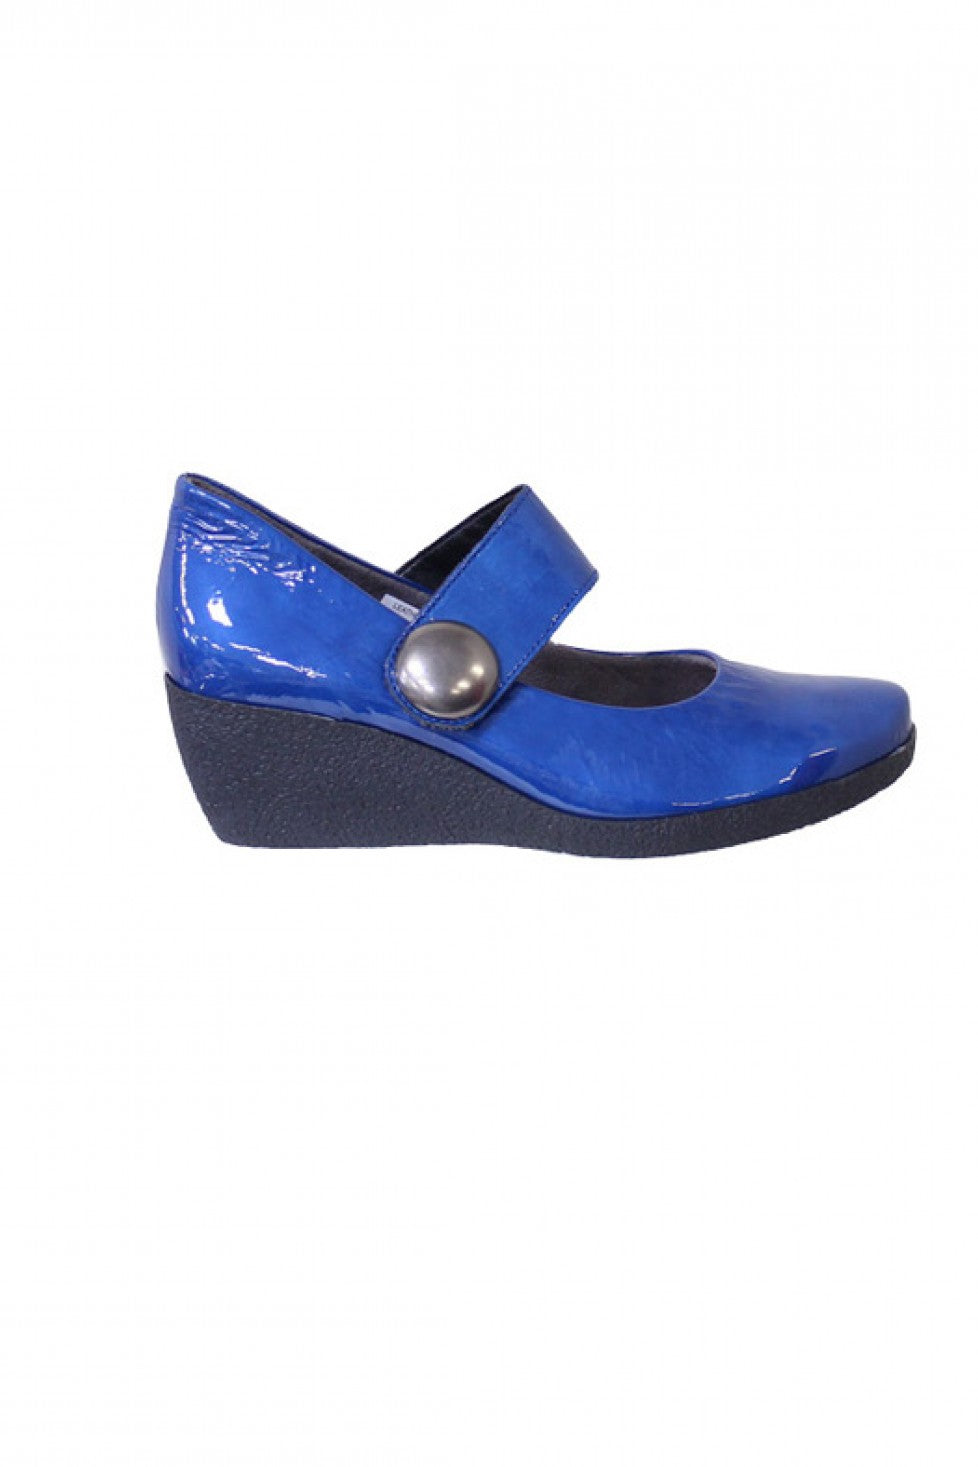 blue-Hirica-Shoe-with-Velcro-Fastening-style-and-grace